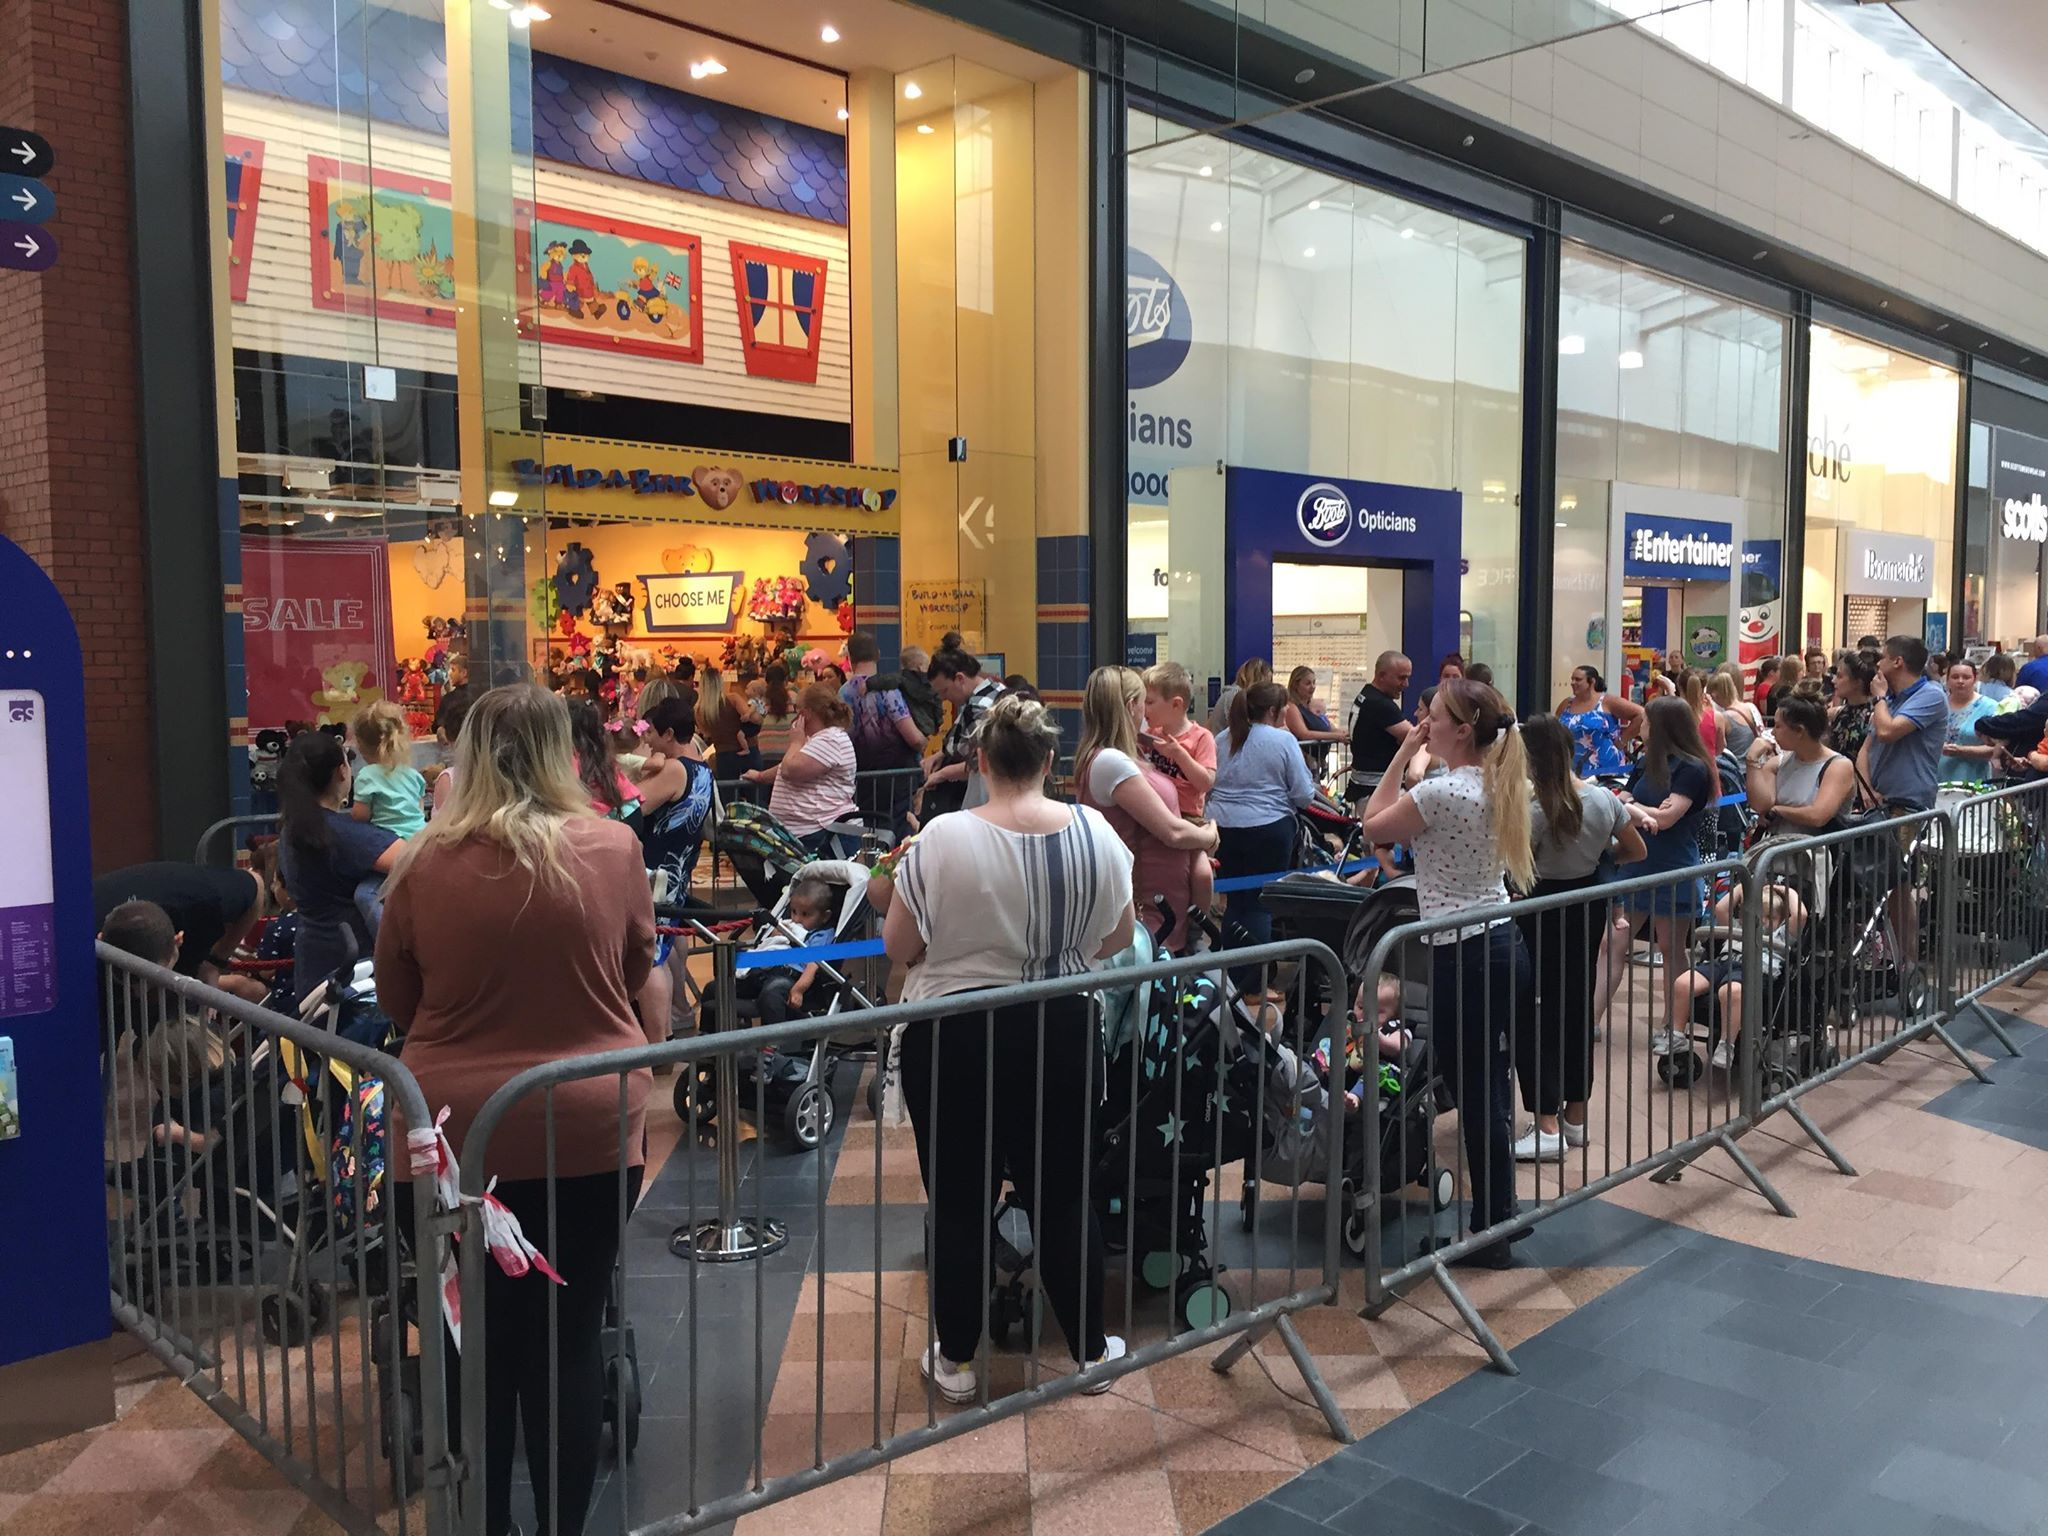 Crowd trouble flares at Build-A-Bear workshops